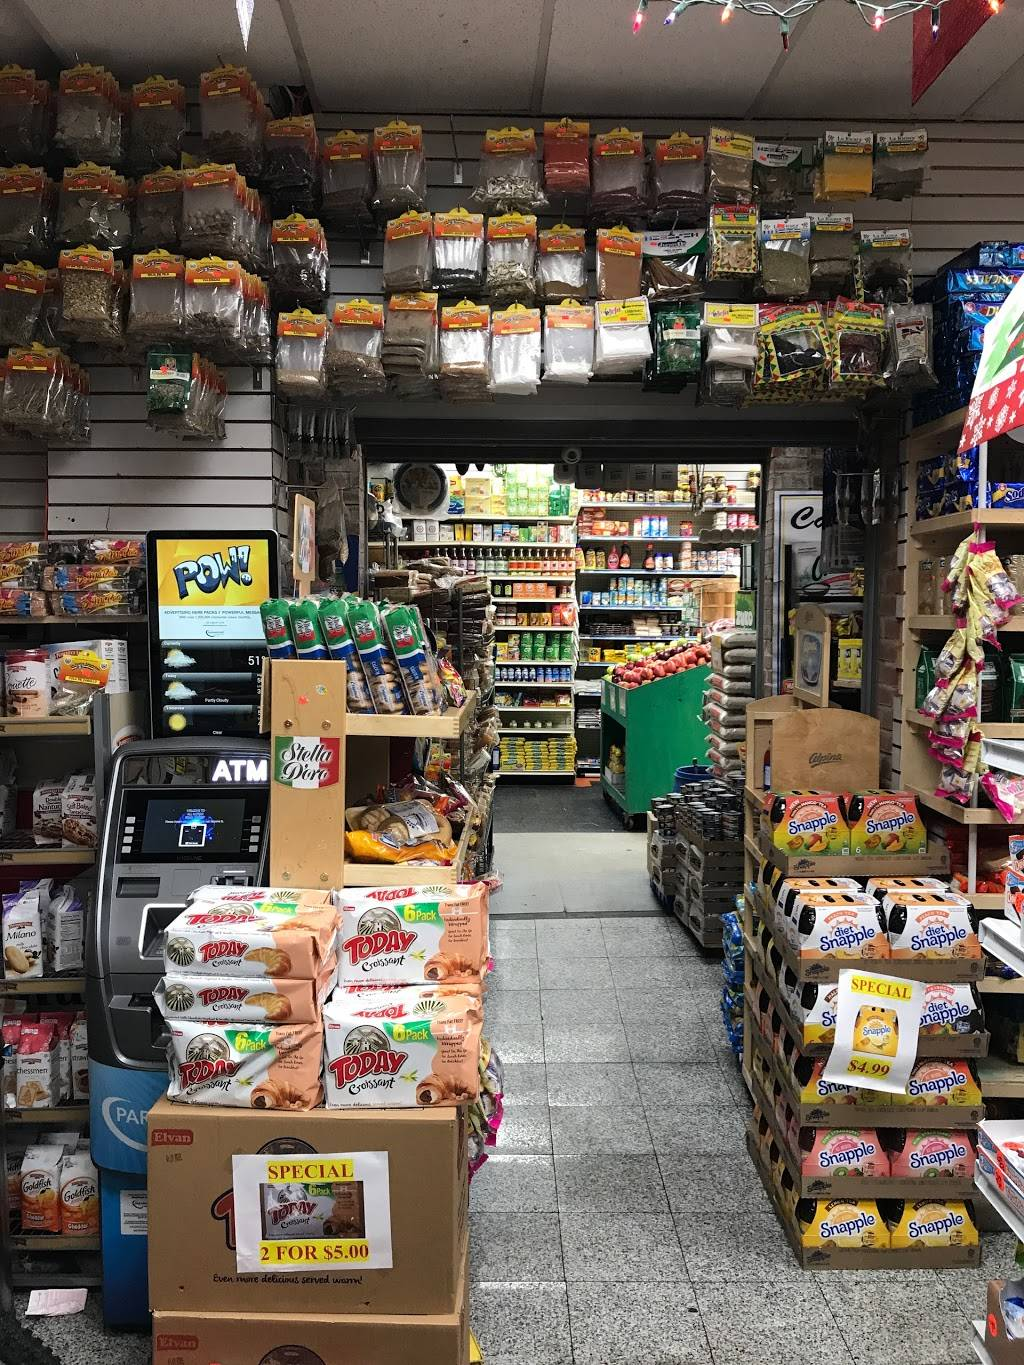 All Nations Food Market | restaurant | 20-02 College Point Blvd, Flushing, NY 11356, USA | 7187625626 OR +1 718-762-5626